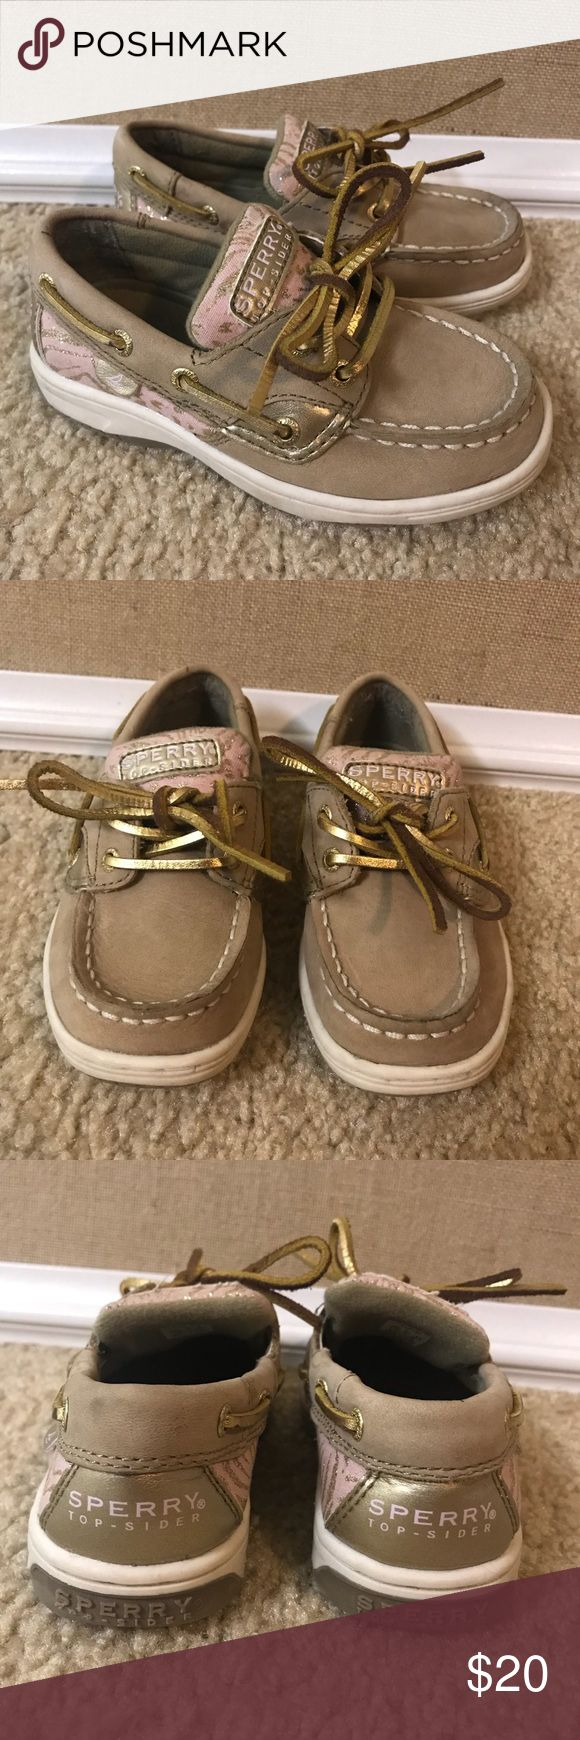 Toddler Sperry Top-Sider Boat Shoes Toddler Sperry Top-Sider Boat Shoes. Size 8.5M. Sperry Top-Sider Shoes Sneakers